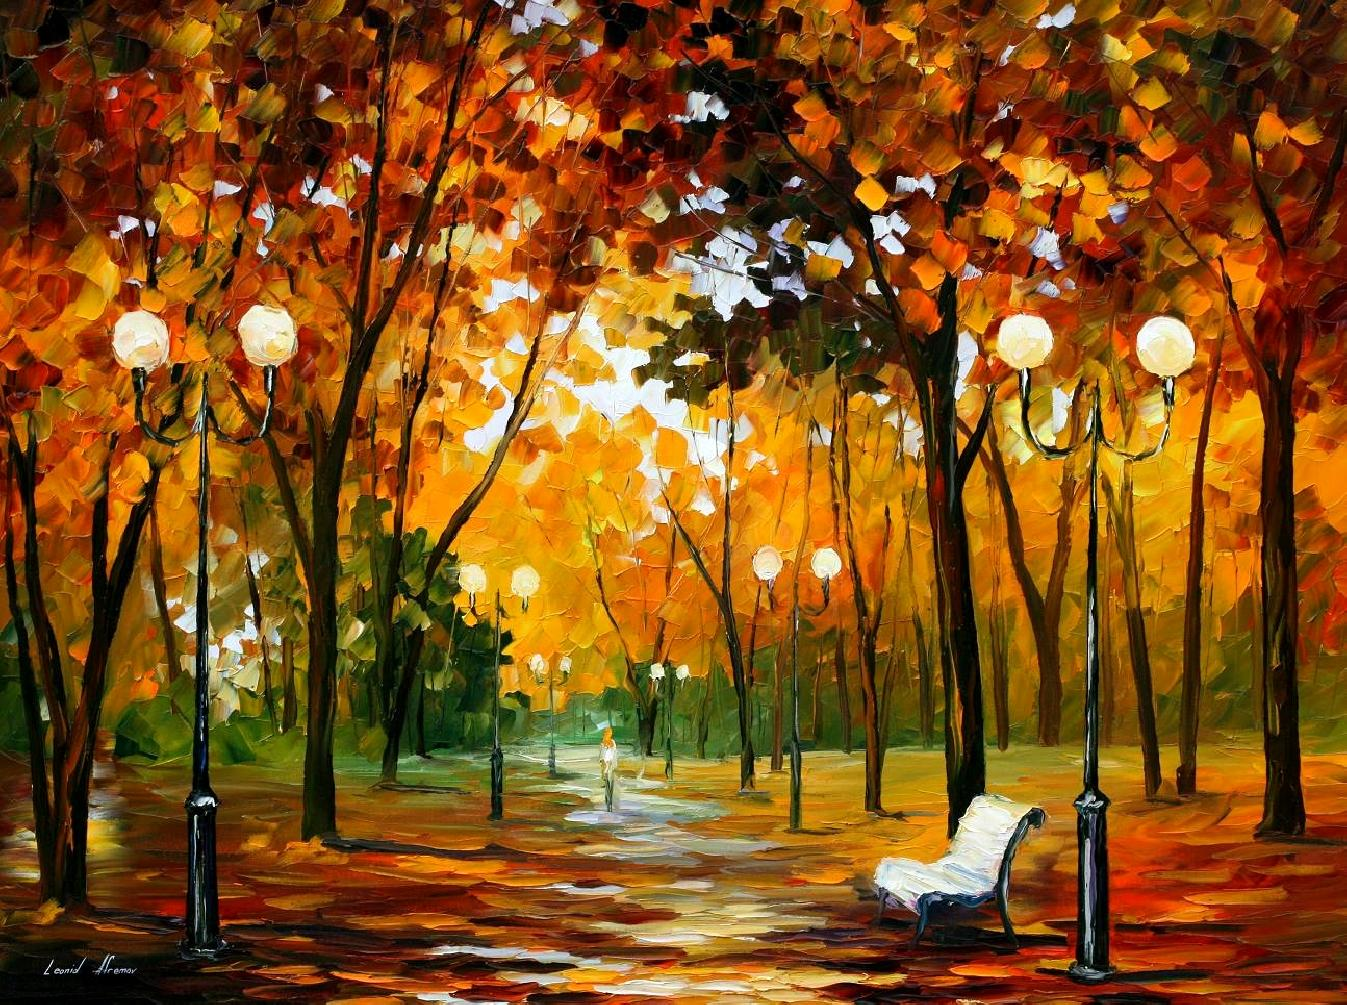 DANCE OF THE WIND —Original oil  On Canvas Painting  By Leonid Afremov - Size 54x40""